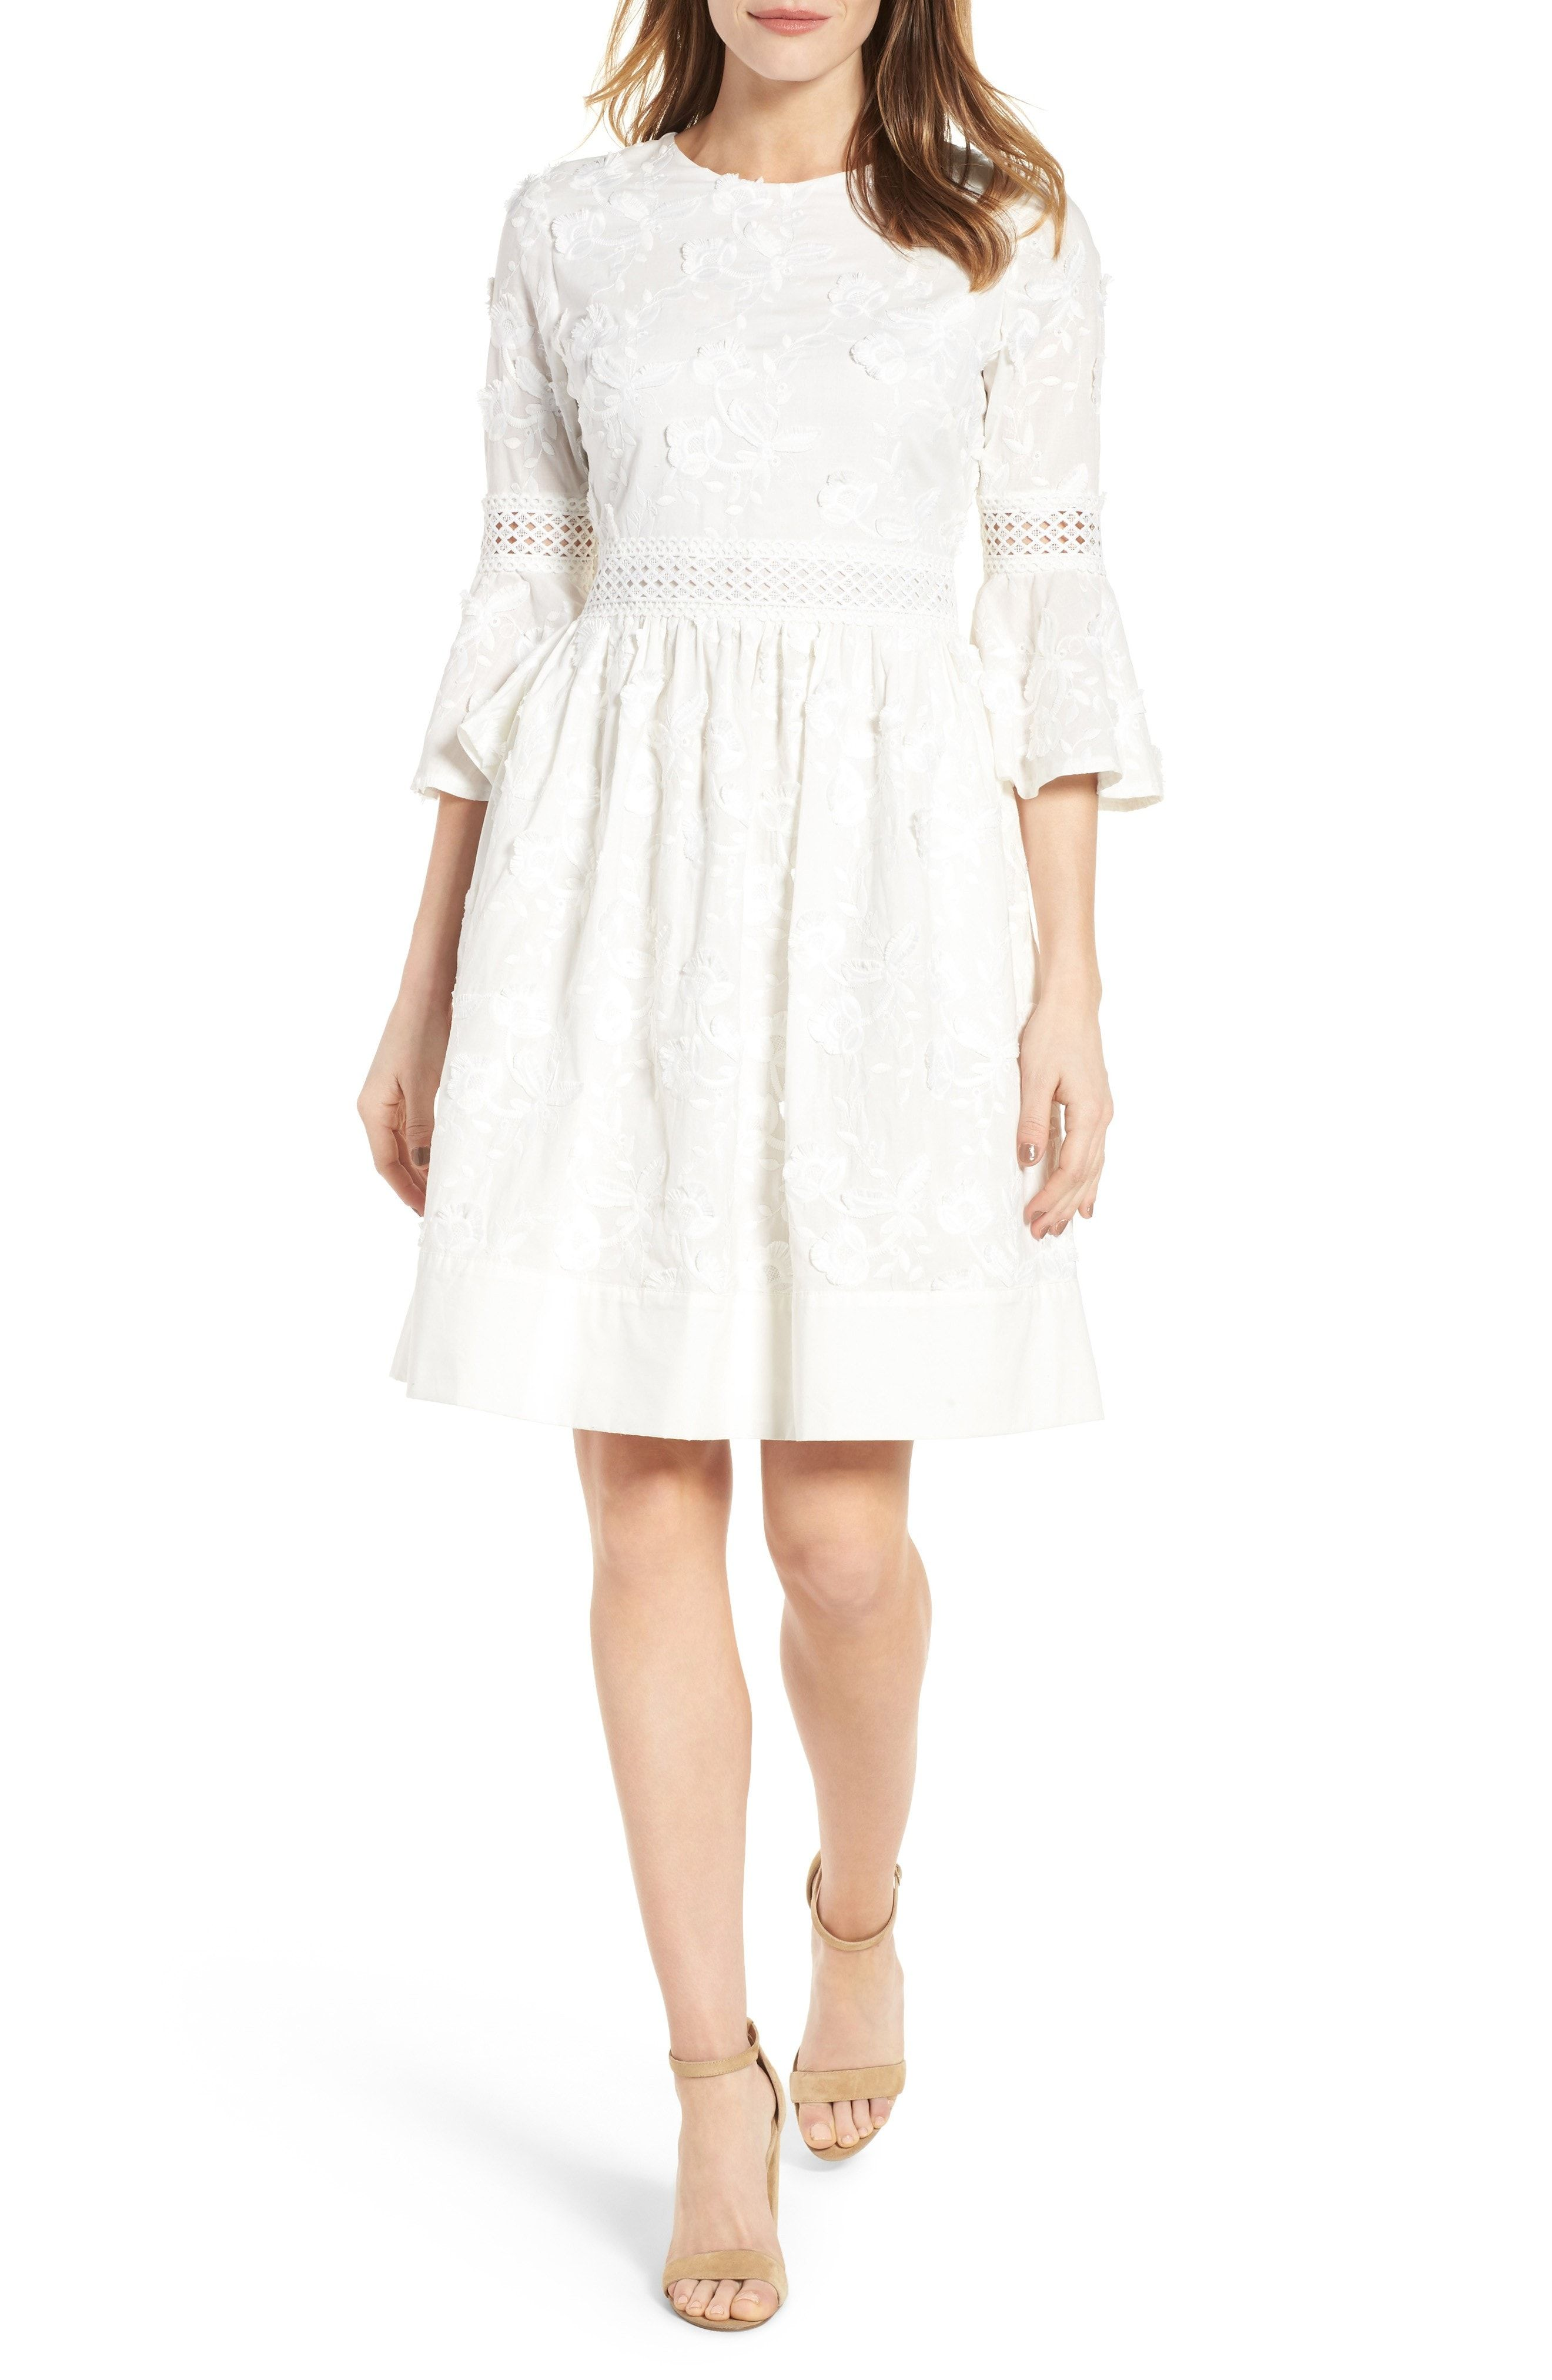 Fit and flare dress wedding  Shop These Little White Dresses for Your PreWedding Events